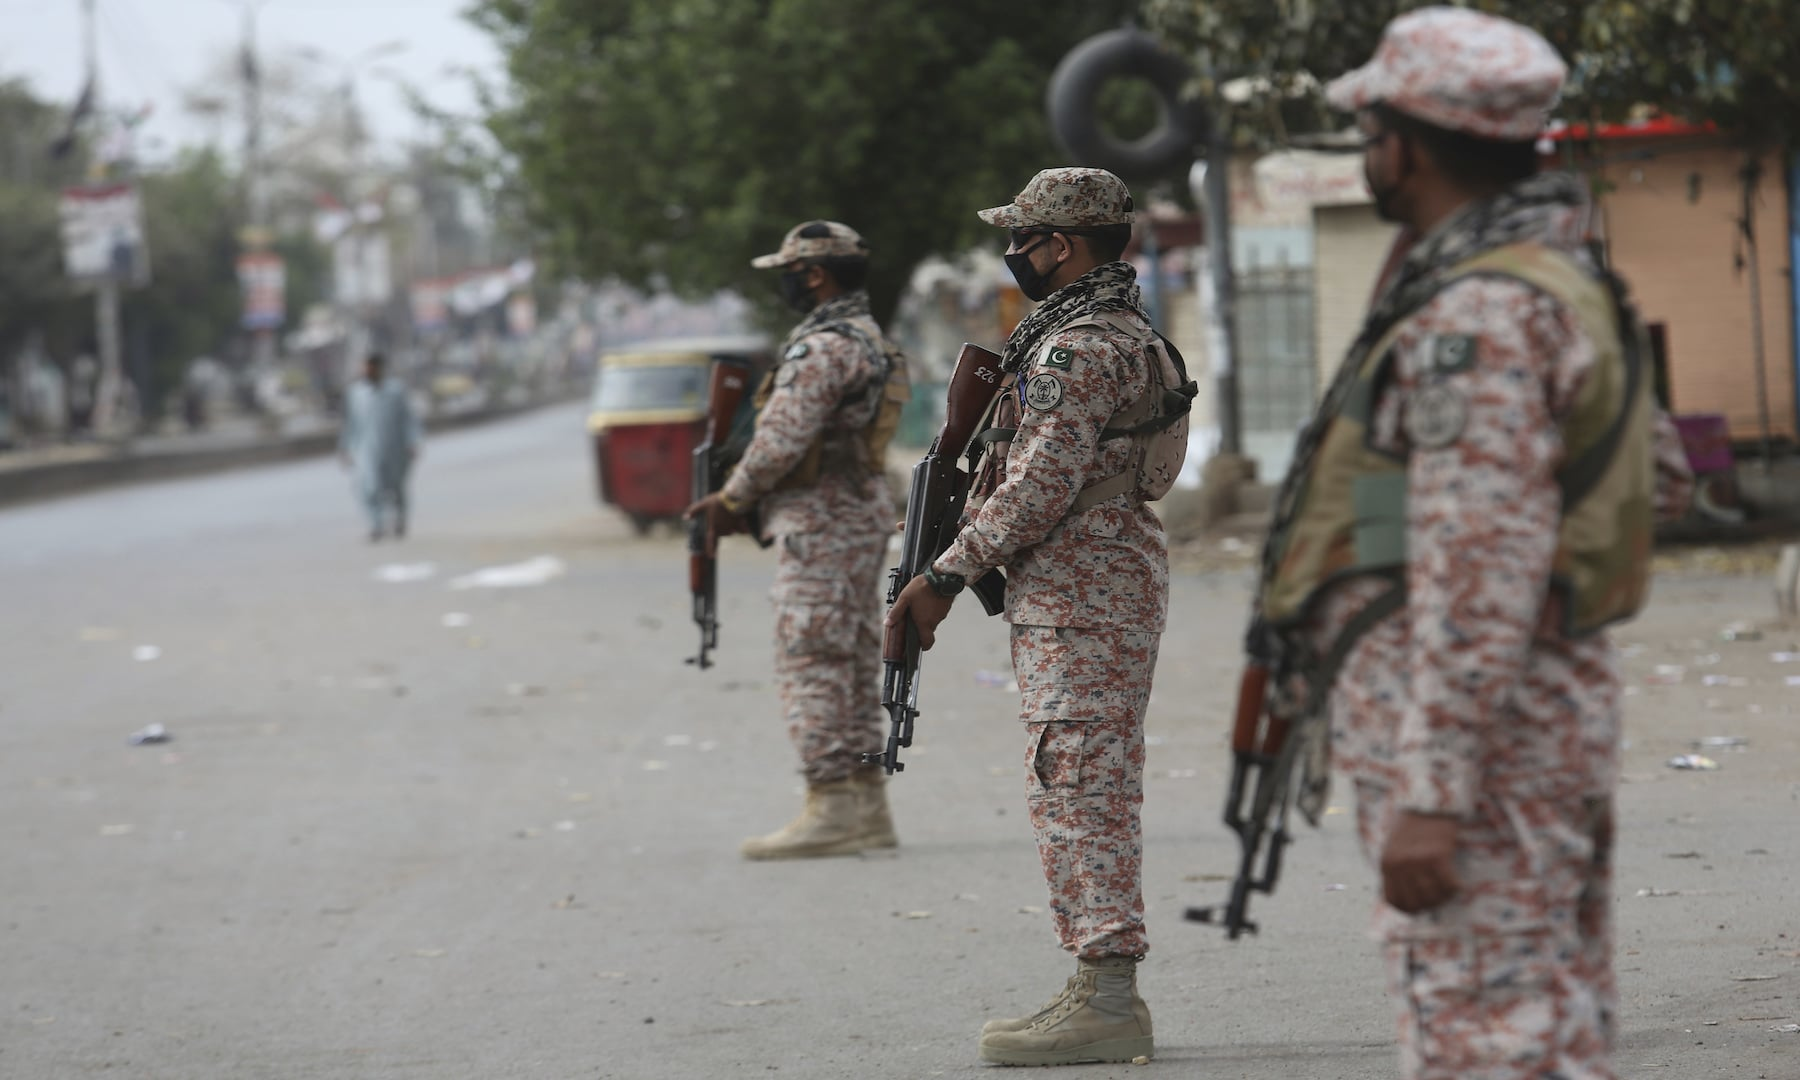 Security personnel stand guard after the government announced a lockdown in Karachi. — AP